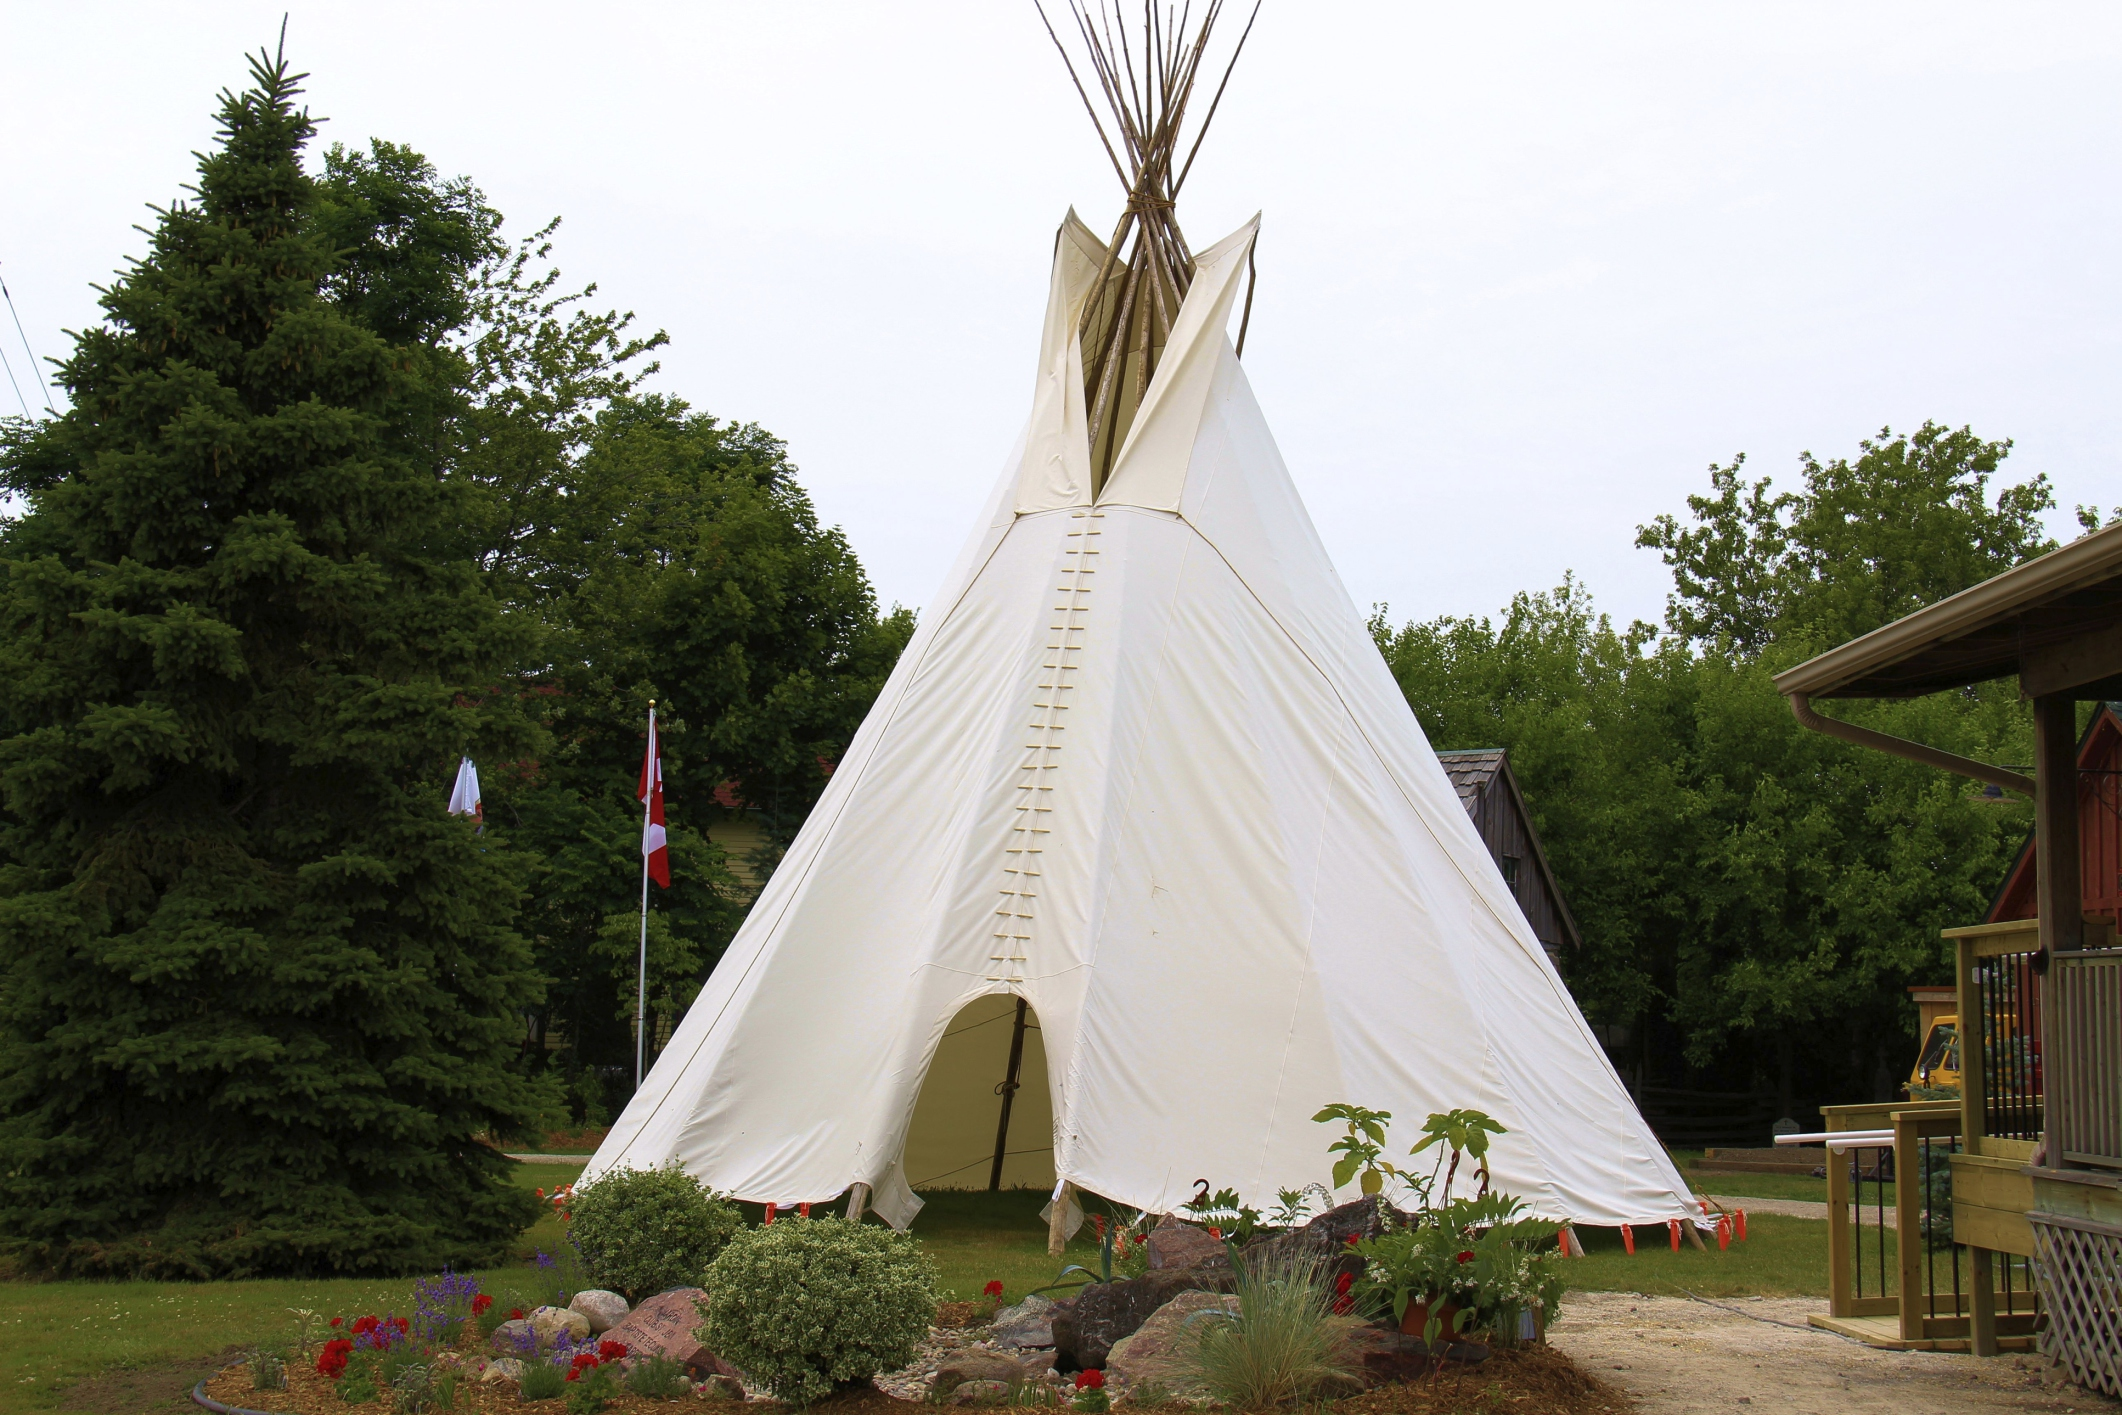 Which Native Americans Lived In Tipis